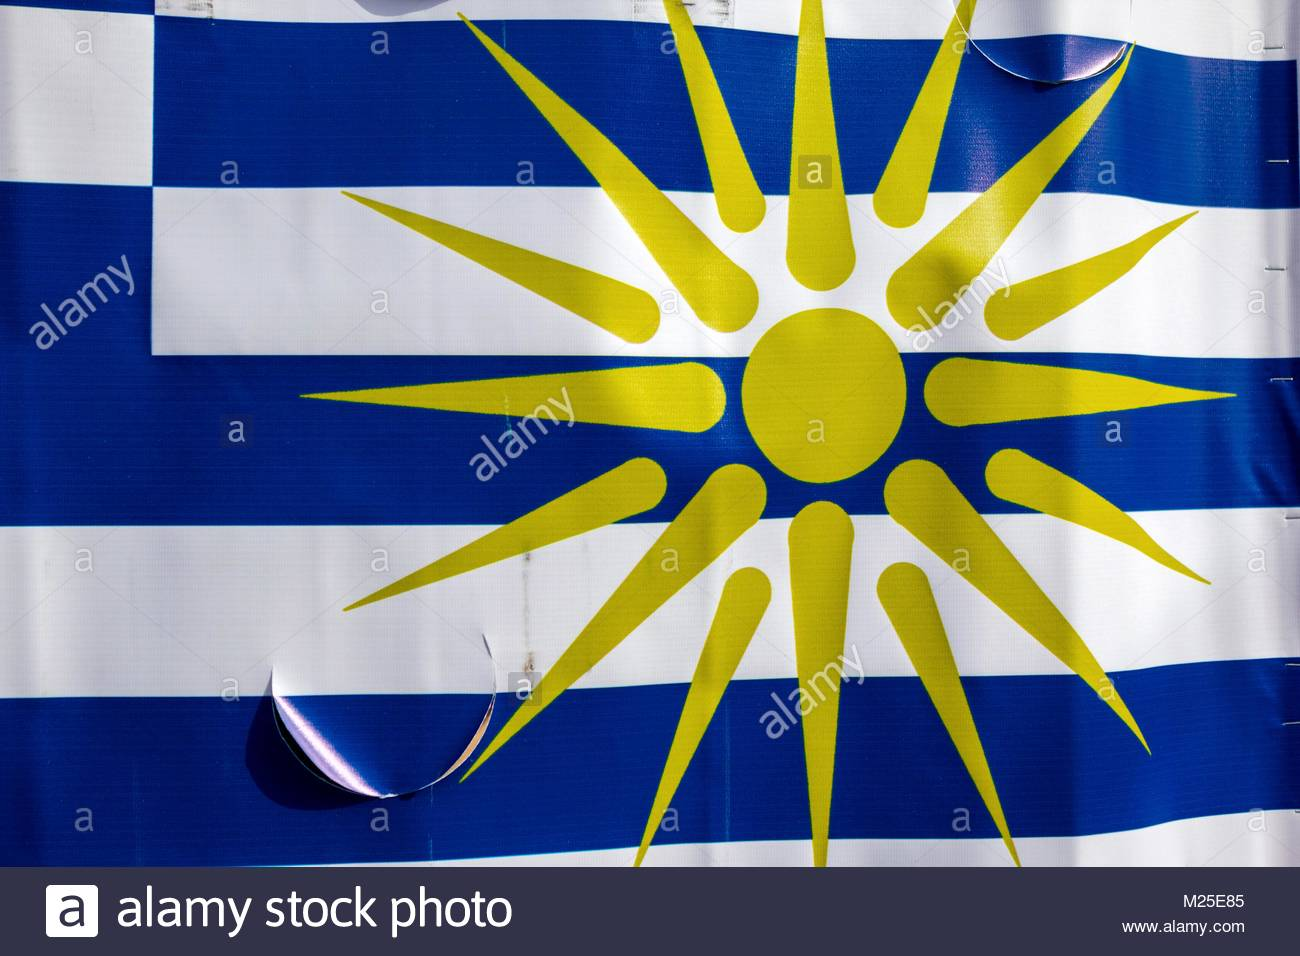 Athens Greece 4th February 2018 A Greek National Flag With The